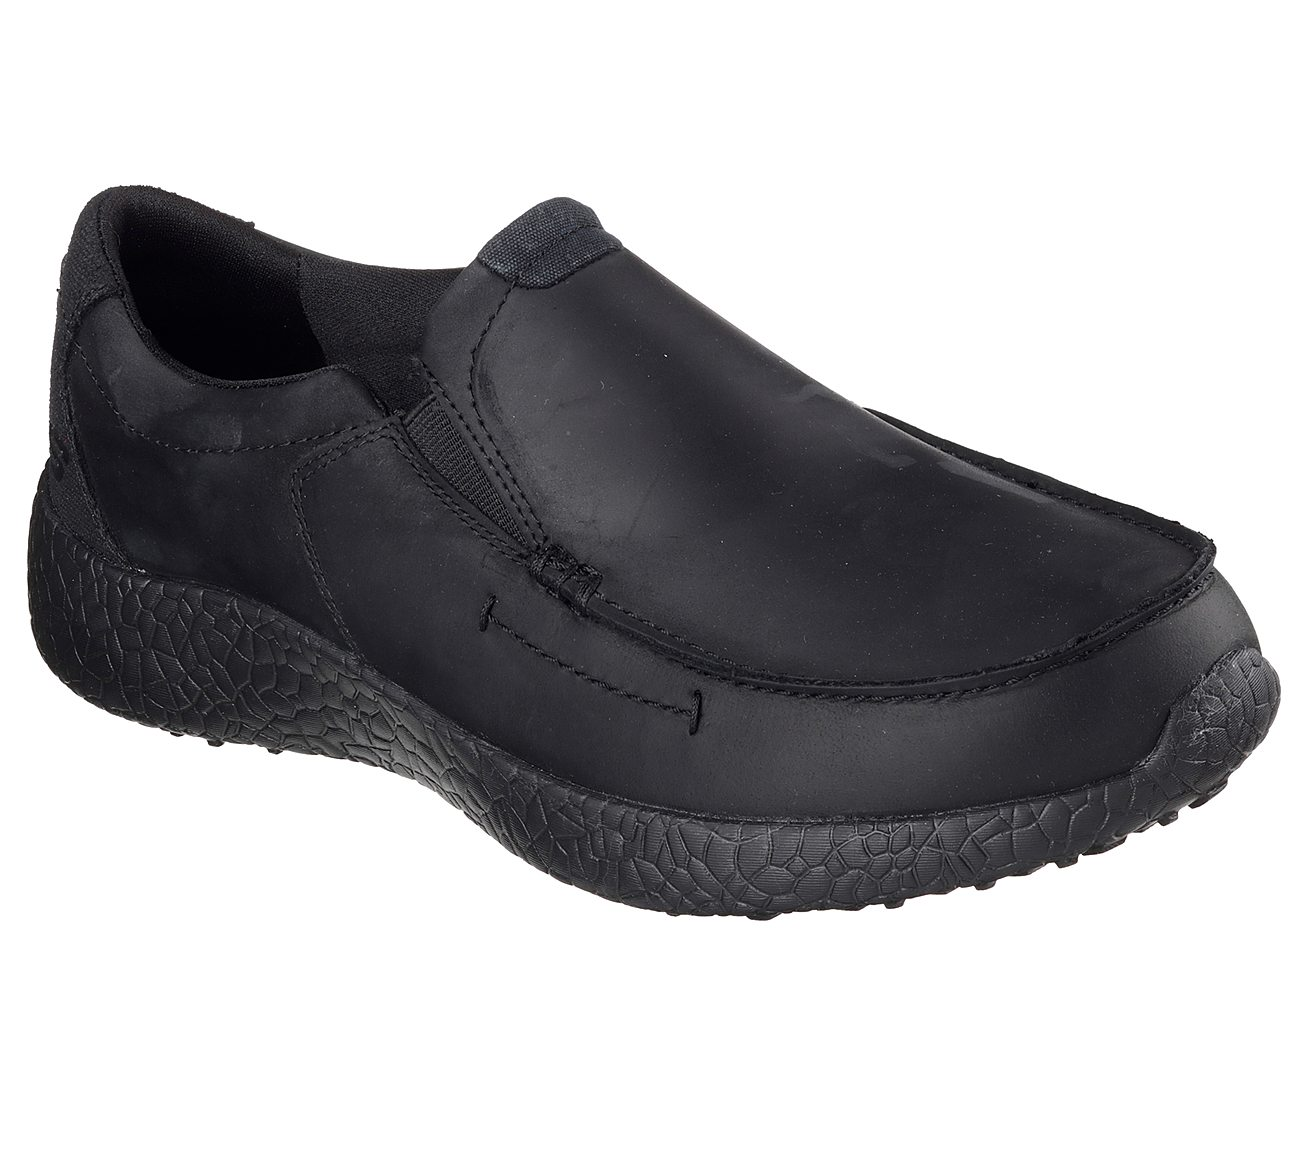 d759b12fc3a8 Buy SKECHERS Burst - Valid USA Casuals Shoes only  55.00